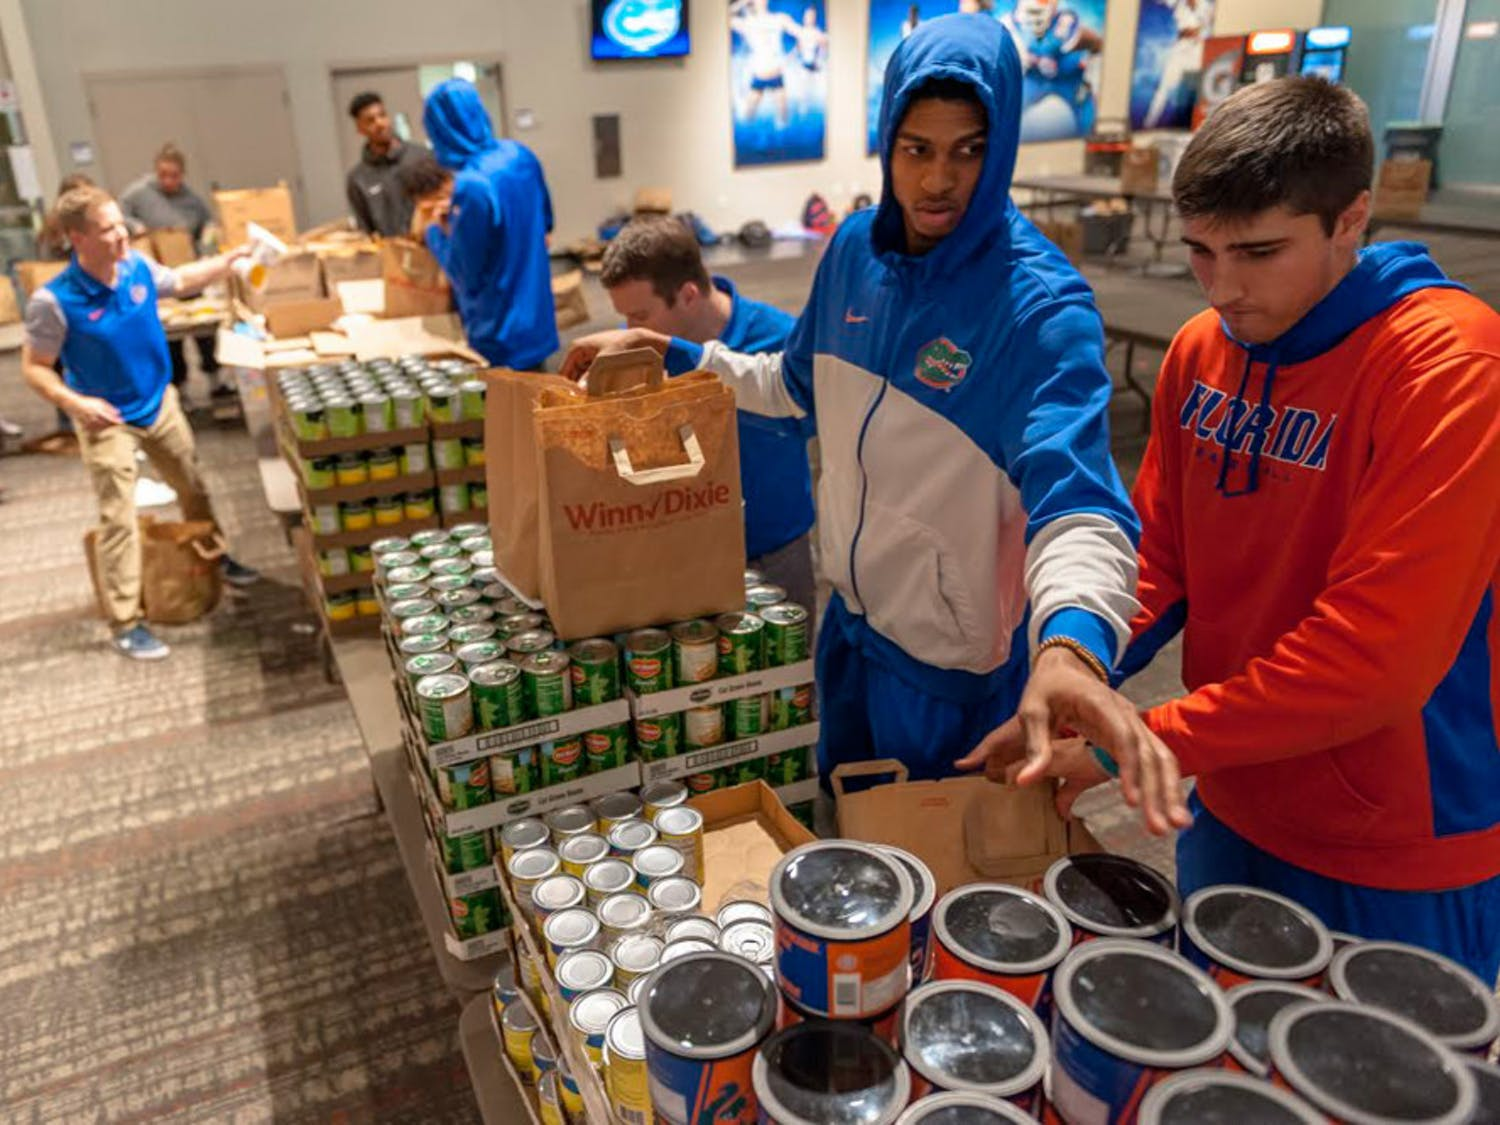 The University Athletic Association works with Grace Marketplace and Catholic Charities to find the homeless and families in need. On Monday, UF athletes filled 1,200 Winn-Dixie bags with Thanksgiving food — enough to feed 600 local families.